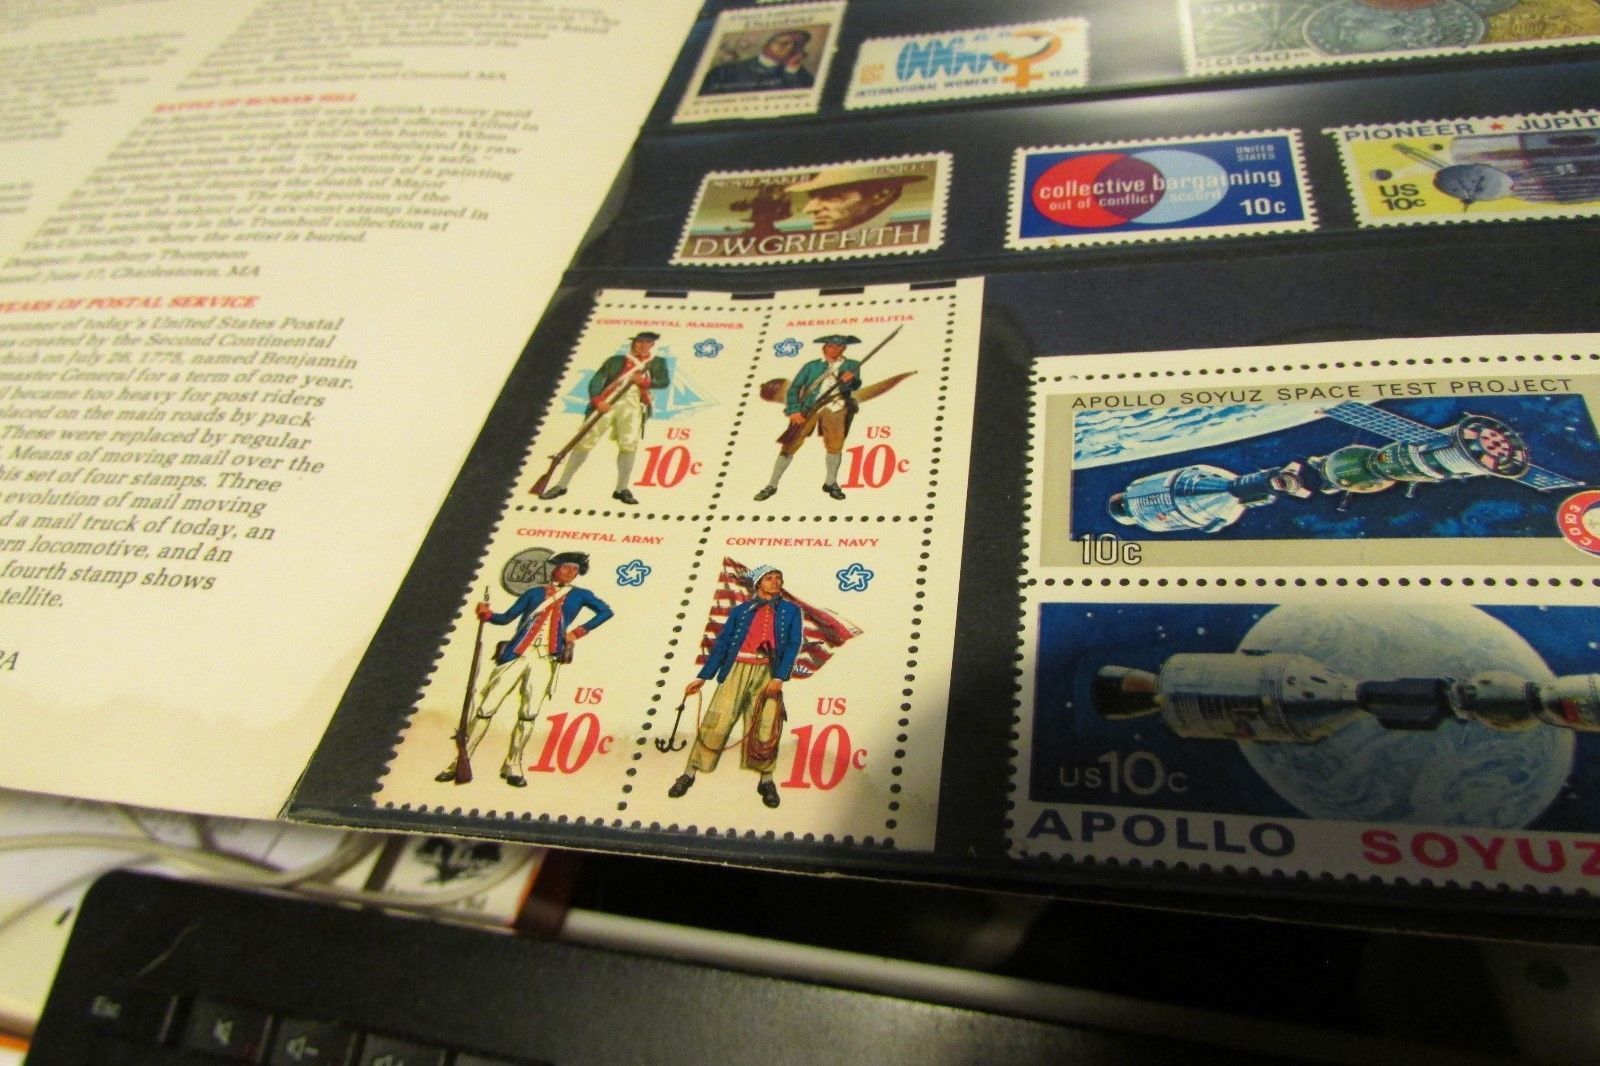 USPS MINT SET OF COMMEMORATIVE STAMPS 1975 - 27 STAMPS